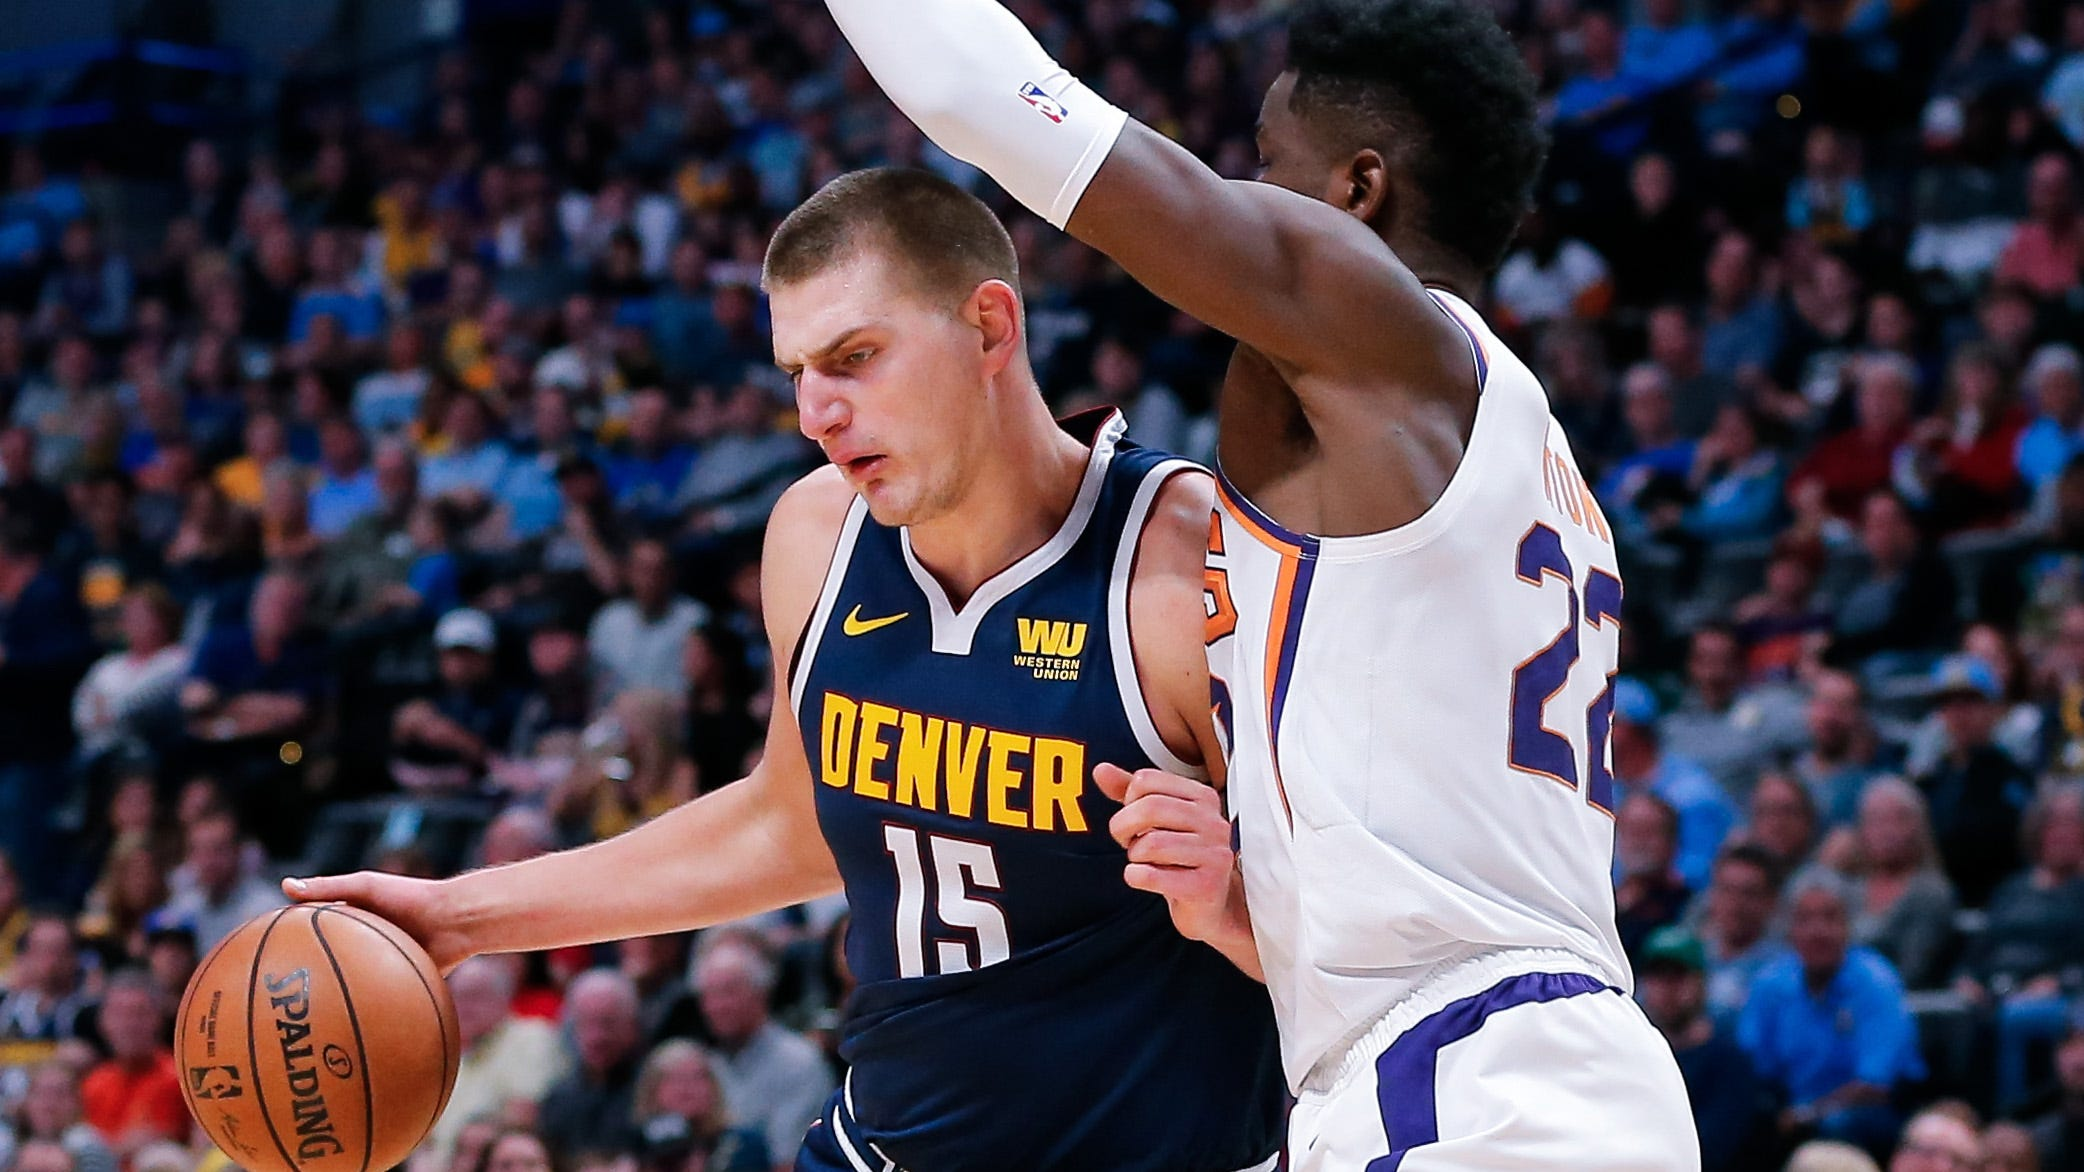 Nikola Jokic shows Deandre Ayton how it's done in Suns' loss to Nuggets